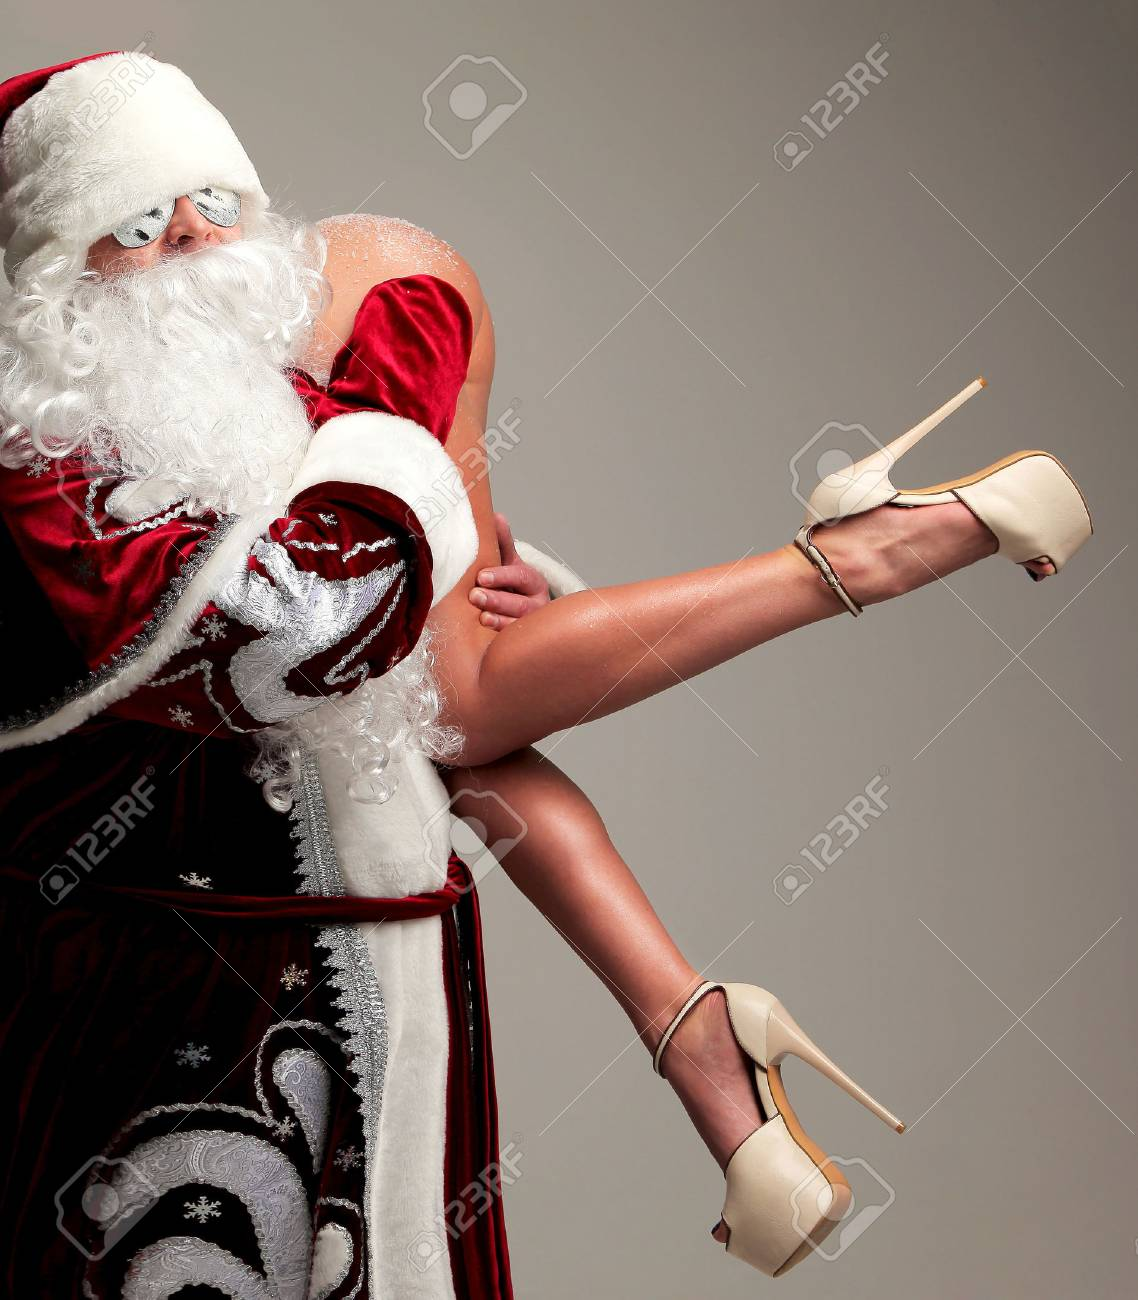 New year 2018 christmas concept. Bad santa claus in snow flakes sunglasses honding young woman with long legs and high hills - 87760920